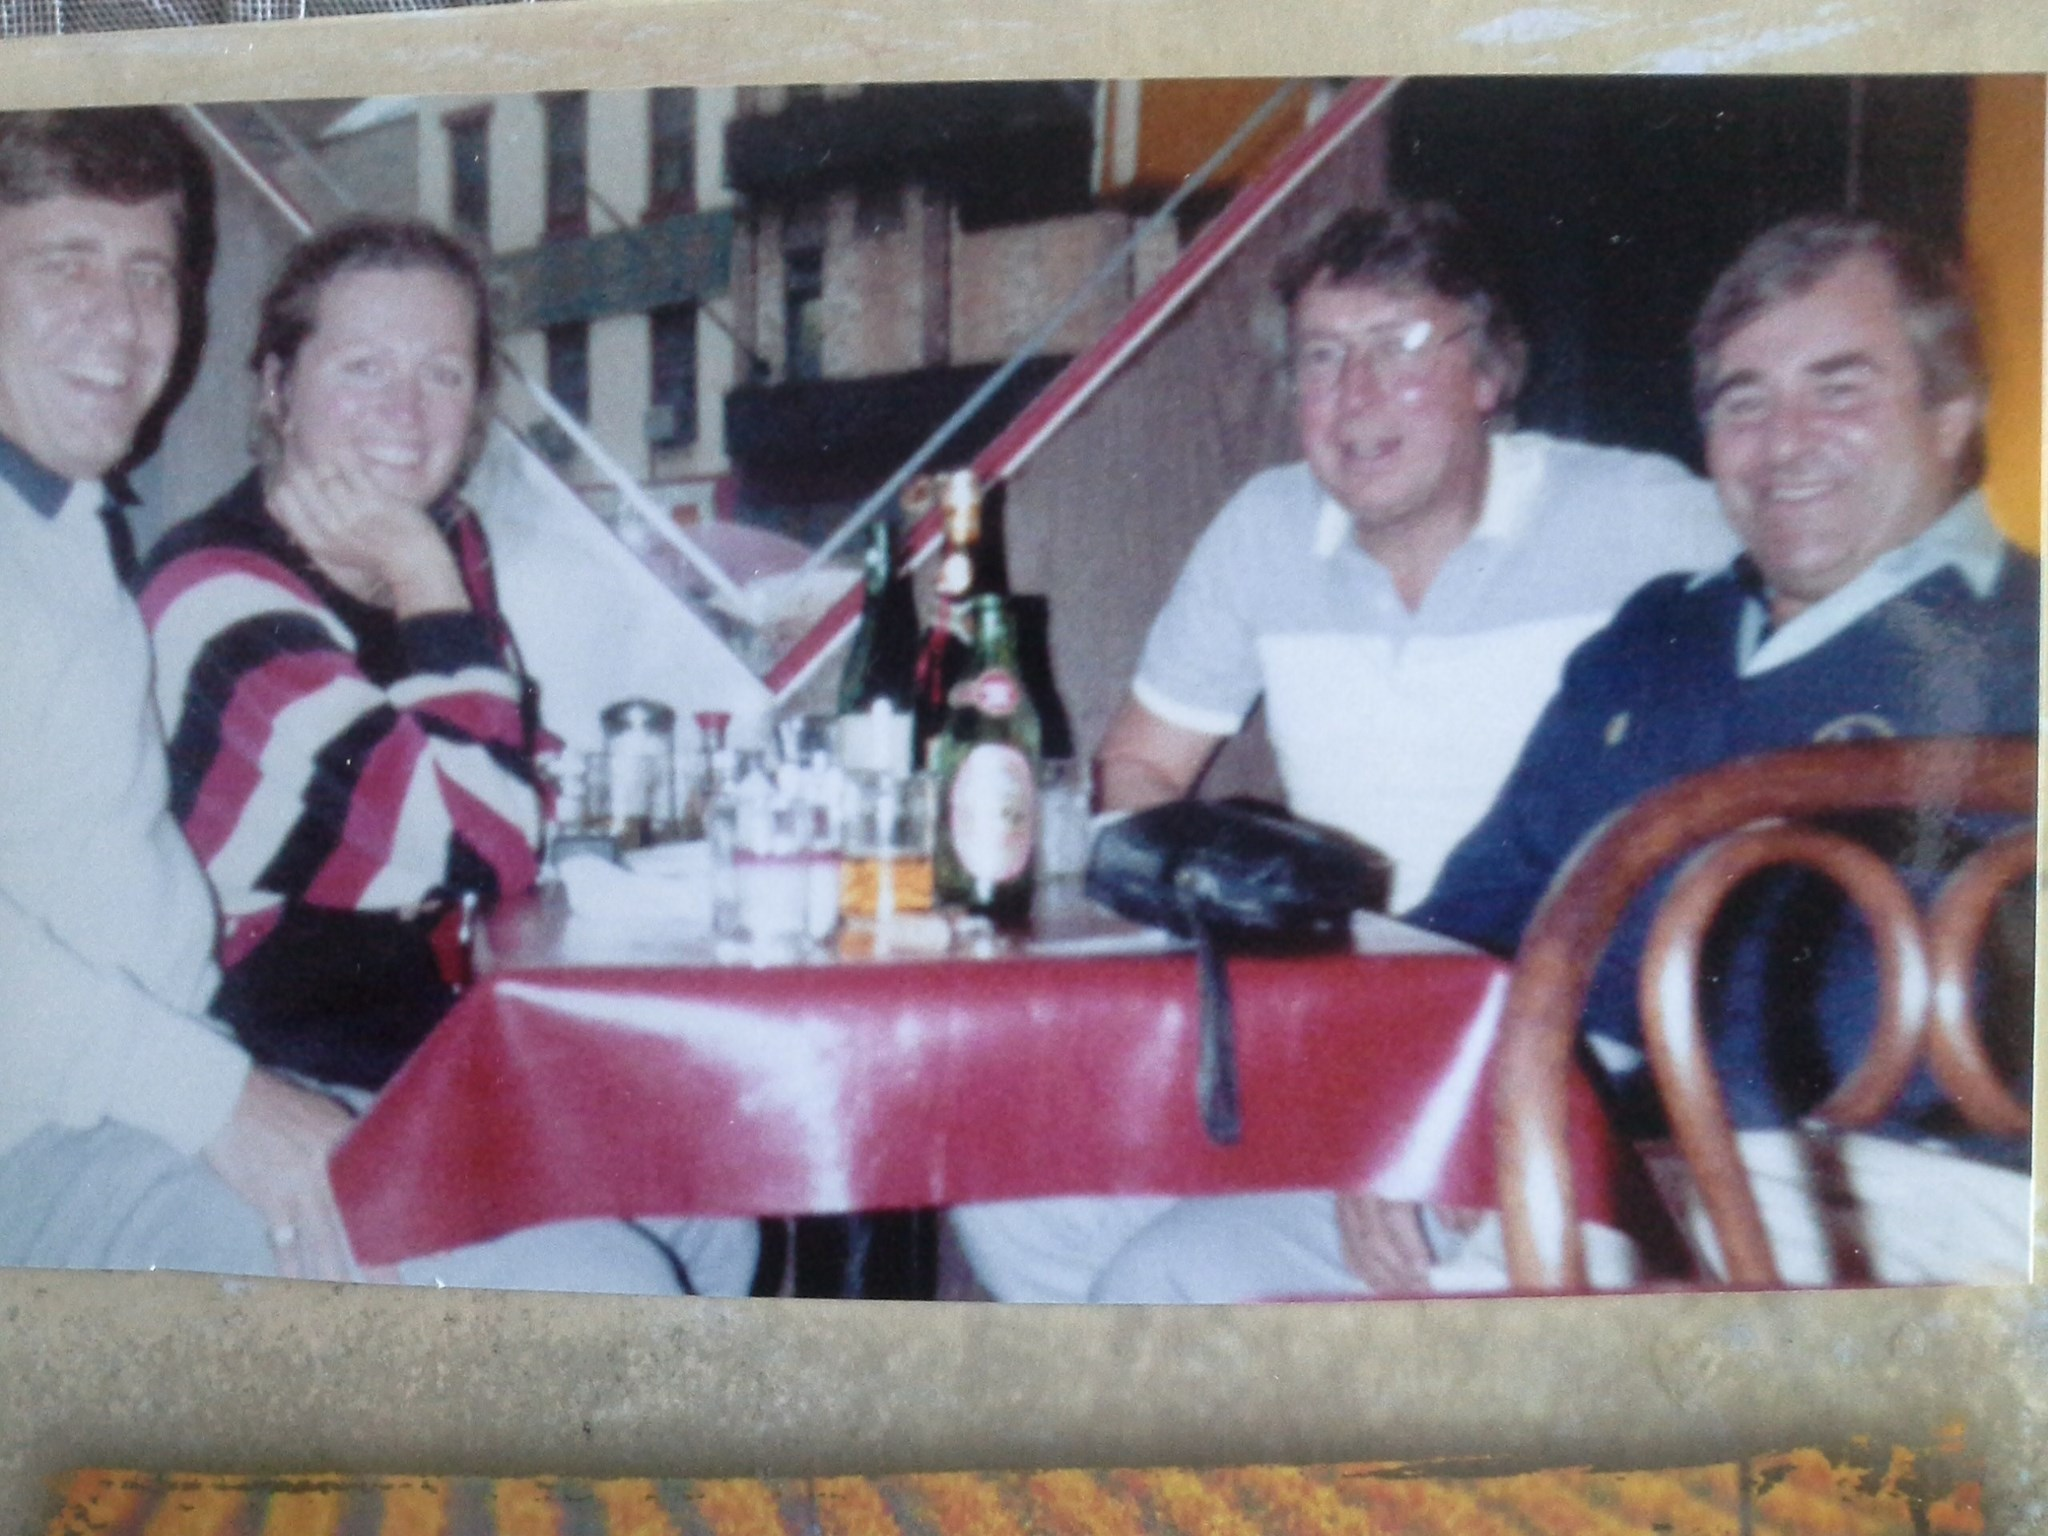 1986 - China Town New York with Denis Hedger, Paul and Jill